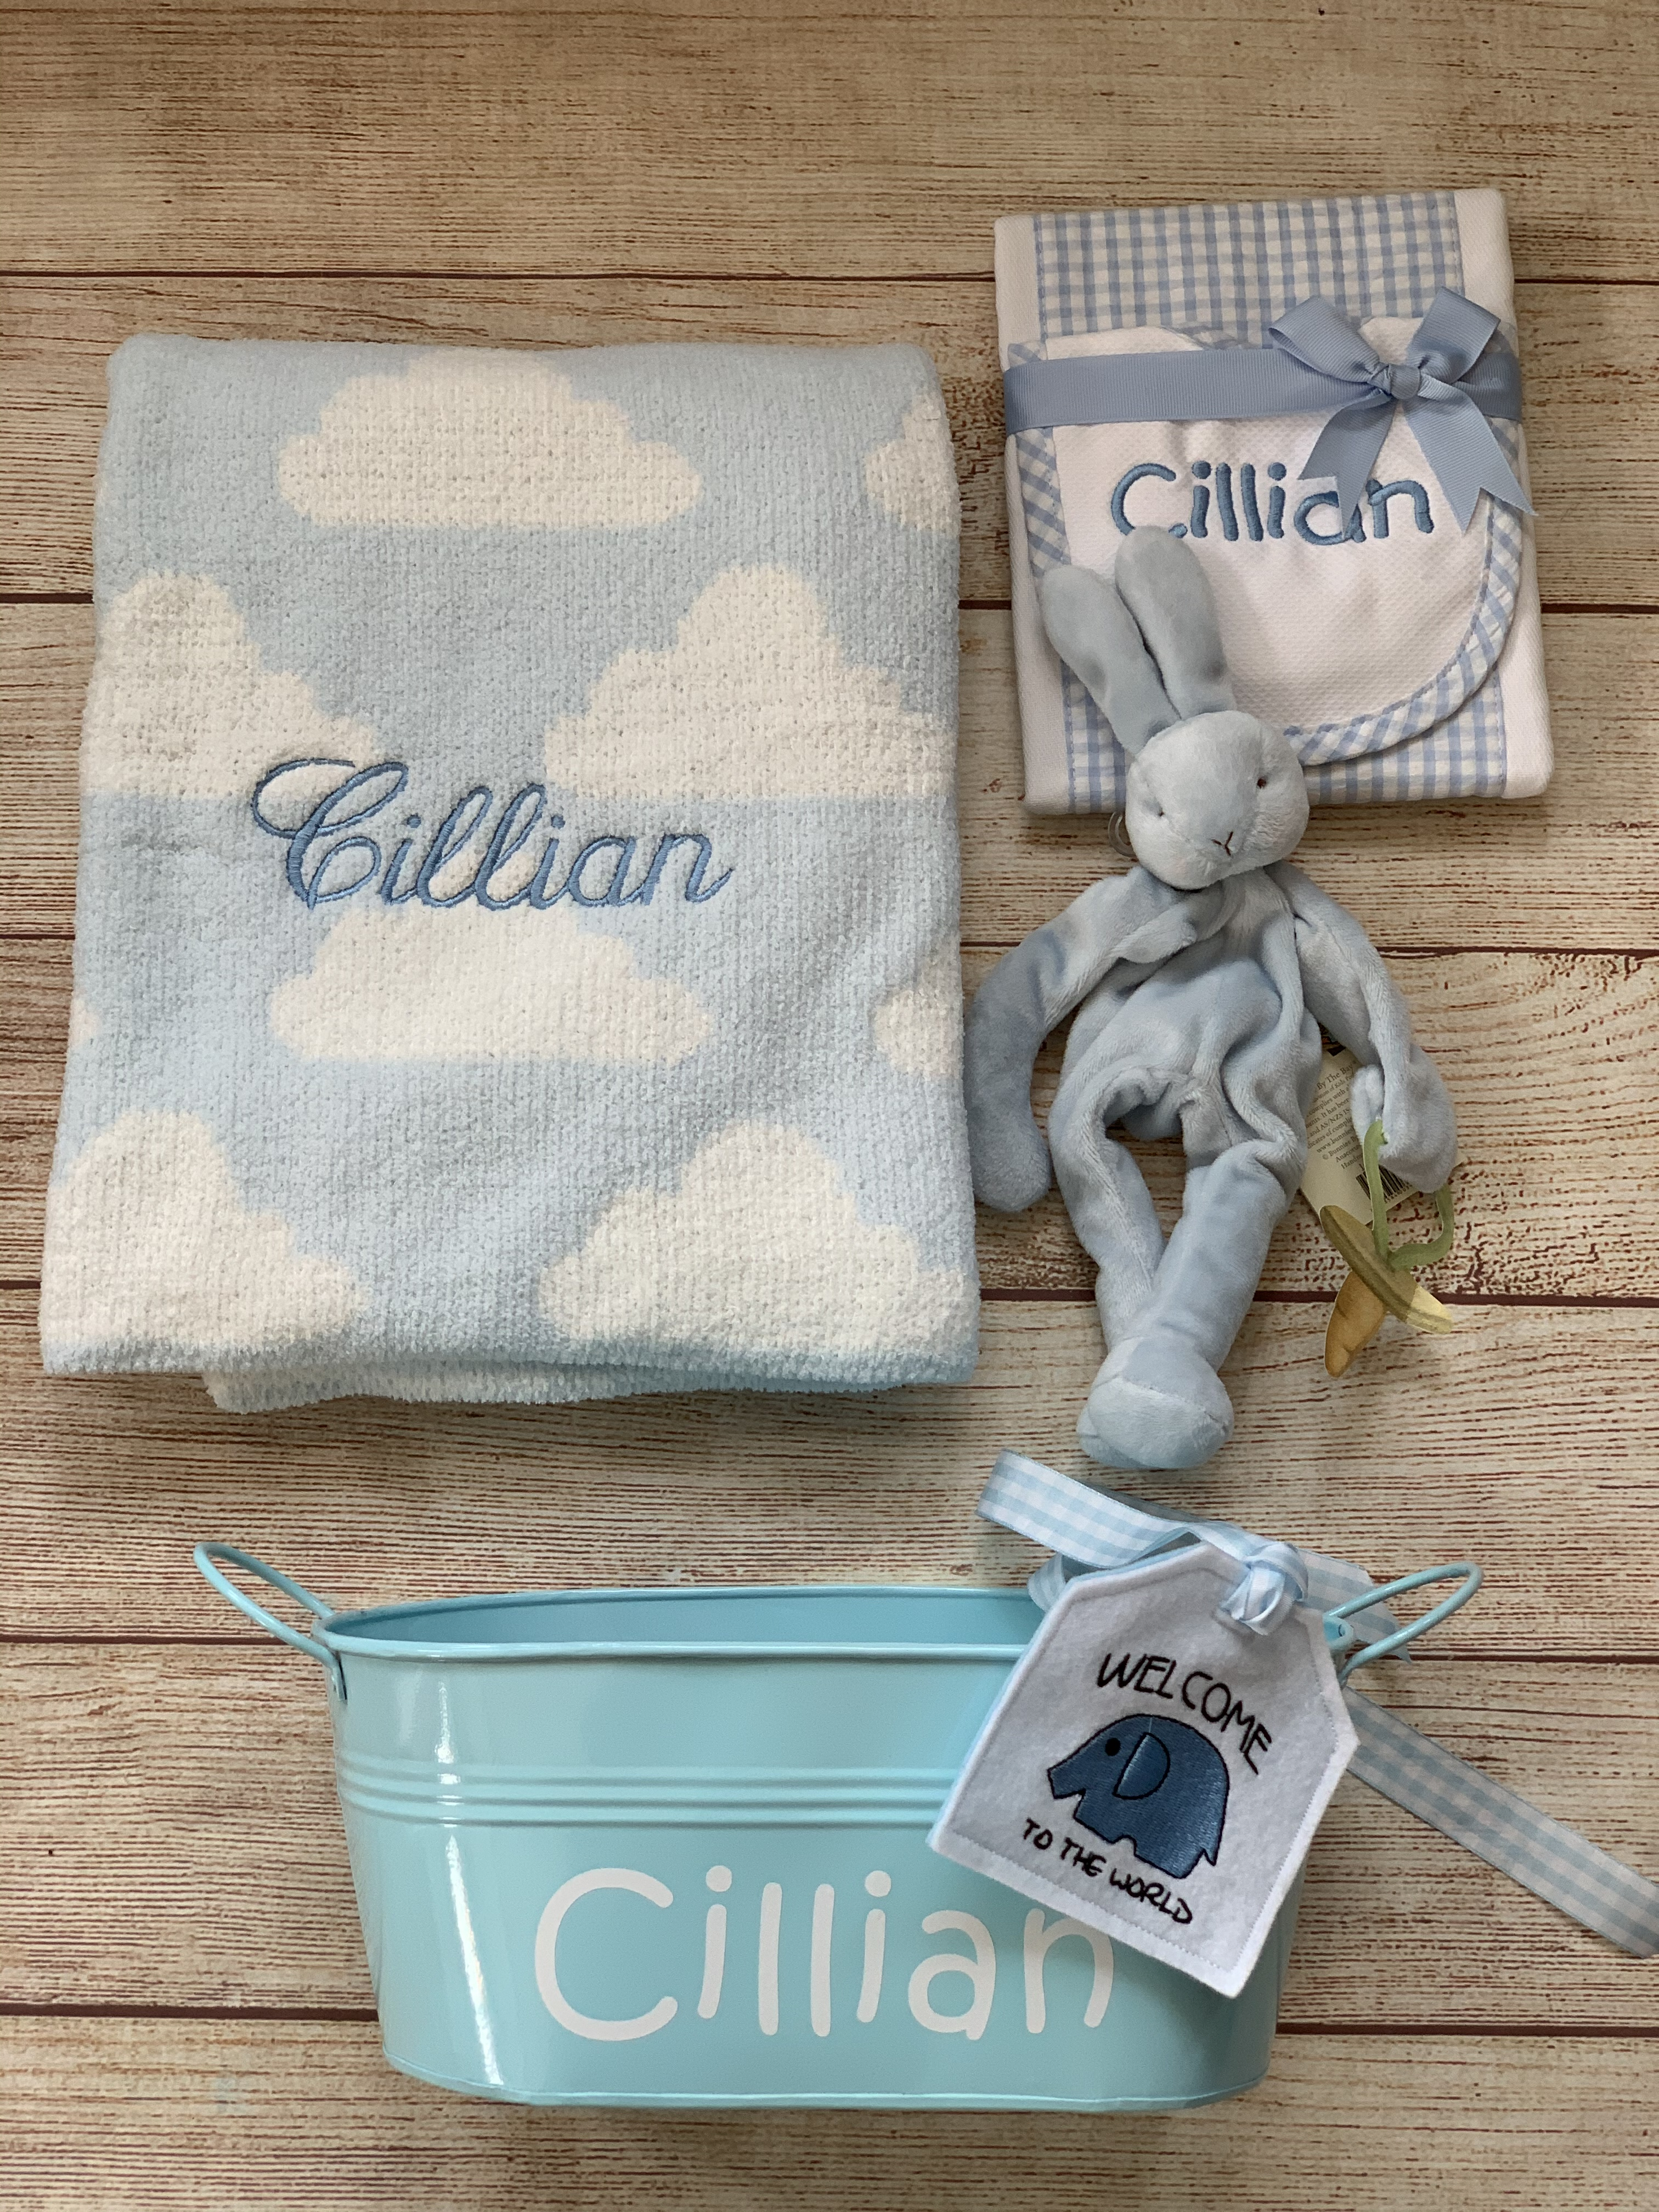 Add a bib & burp cloth, a binkie buddy and upgrade your gift wrap to make the most awesome baby gift ever. It's easy at Wicked Stitches Gifts!